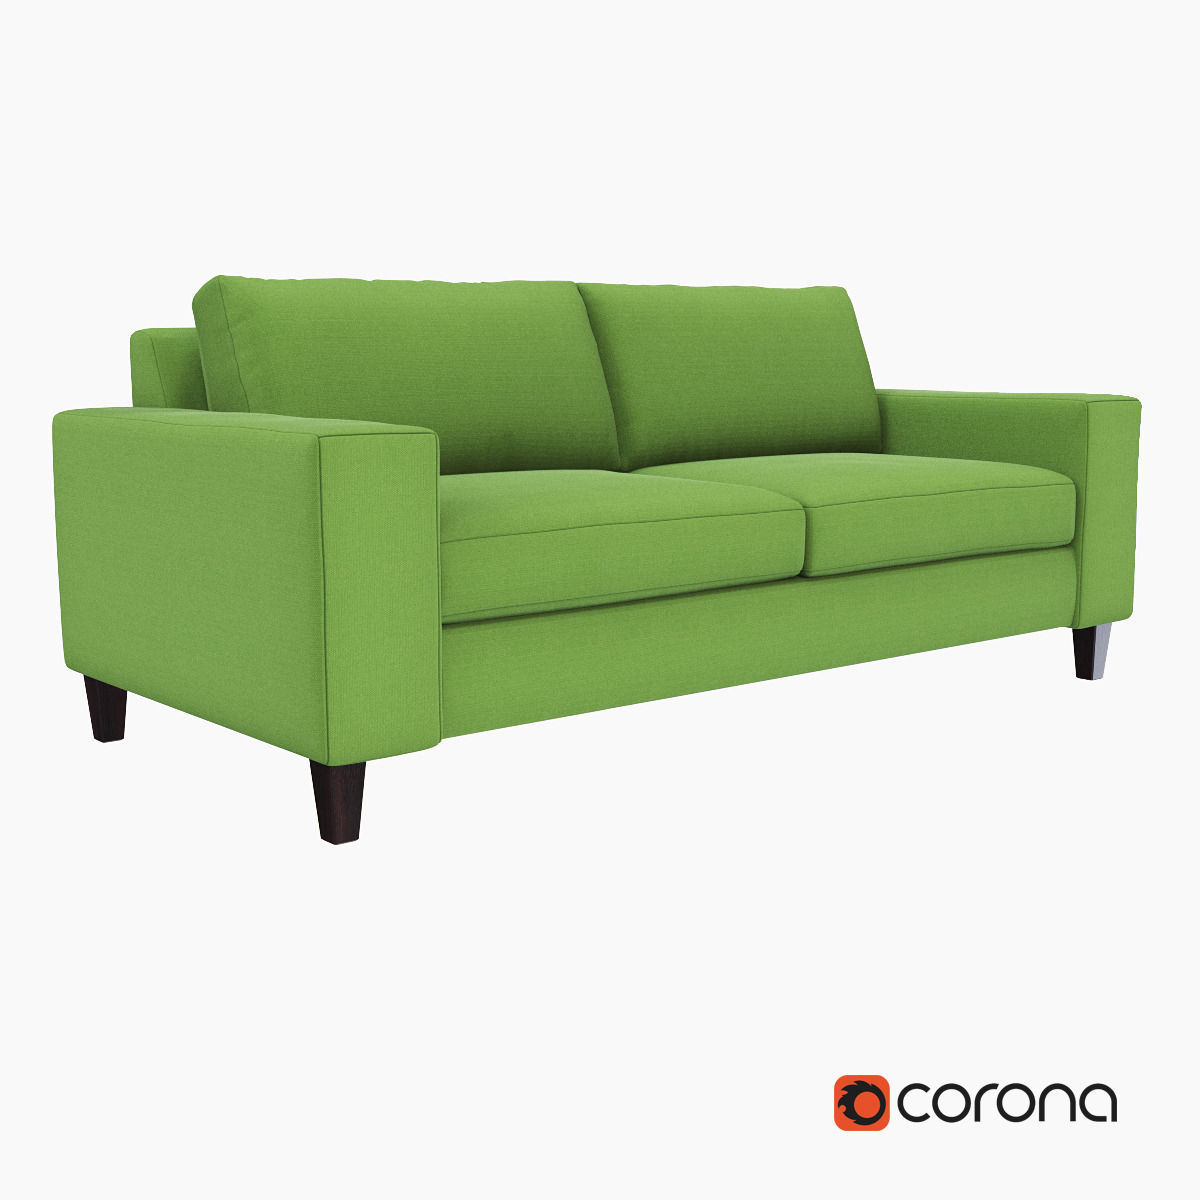 West Elm York Sofa 3d Model Max Obj Fbx Mtl 1 ...